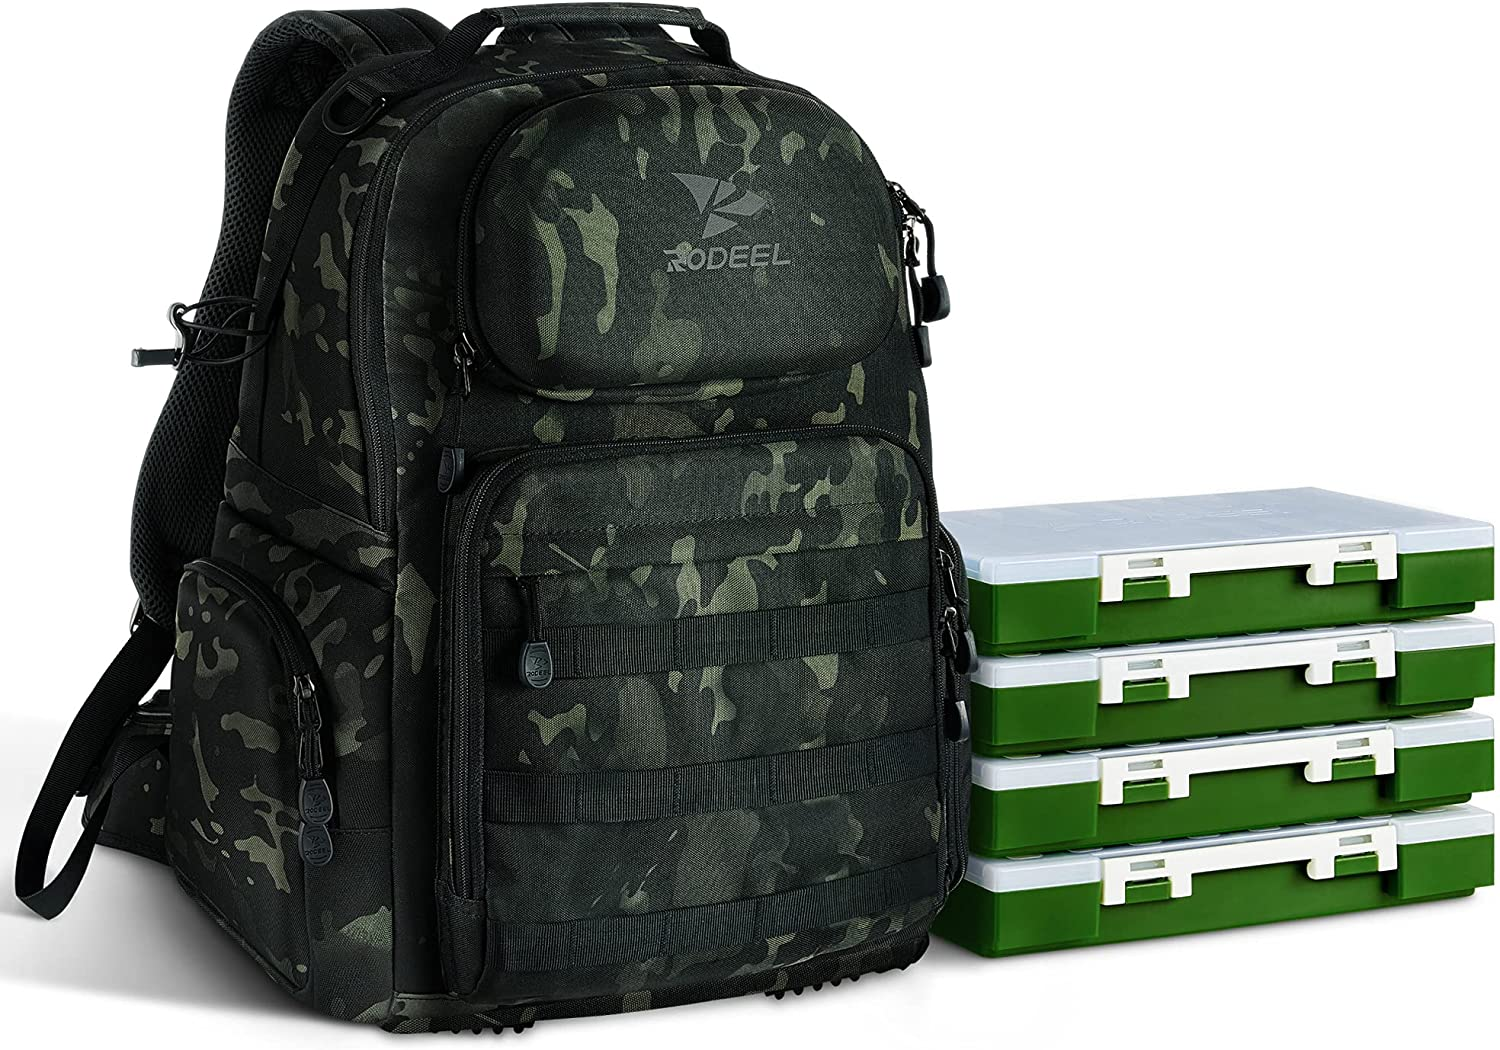 Rodeel Large Storage Backpack Max 83% OFF Tackle Las Vegas Mall Fishing S Hiking